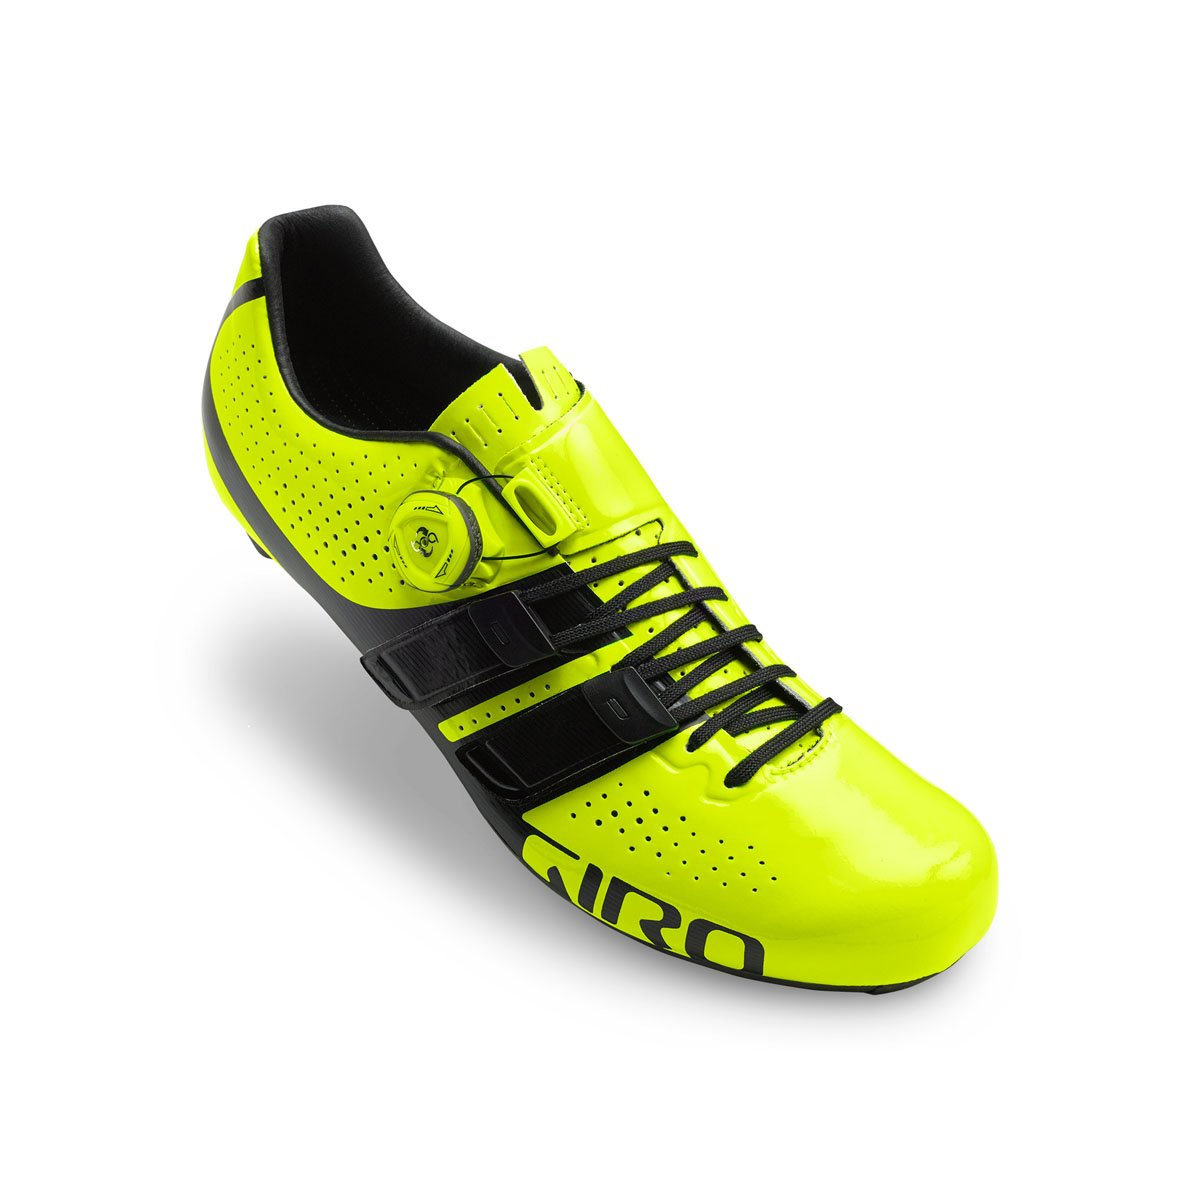 Giro Factor Techlace Road, Zapatos de Ciclismo de Carretera para Hombre: Amazon.es: Zapatos y complementos